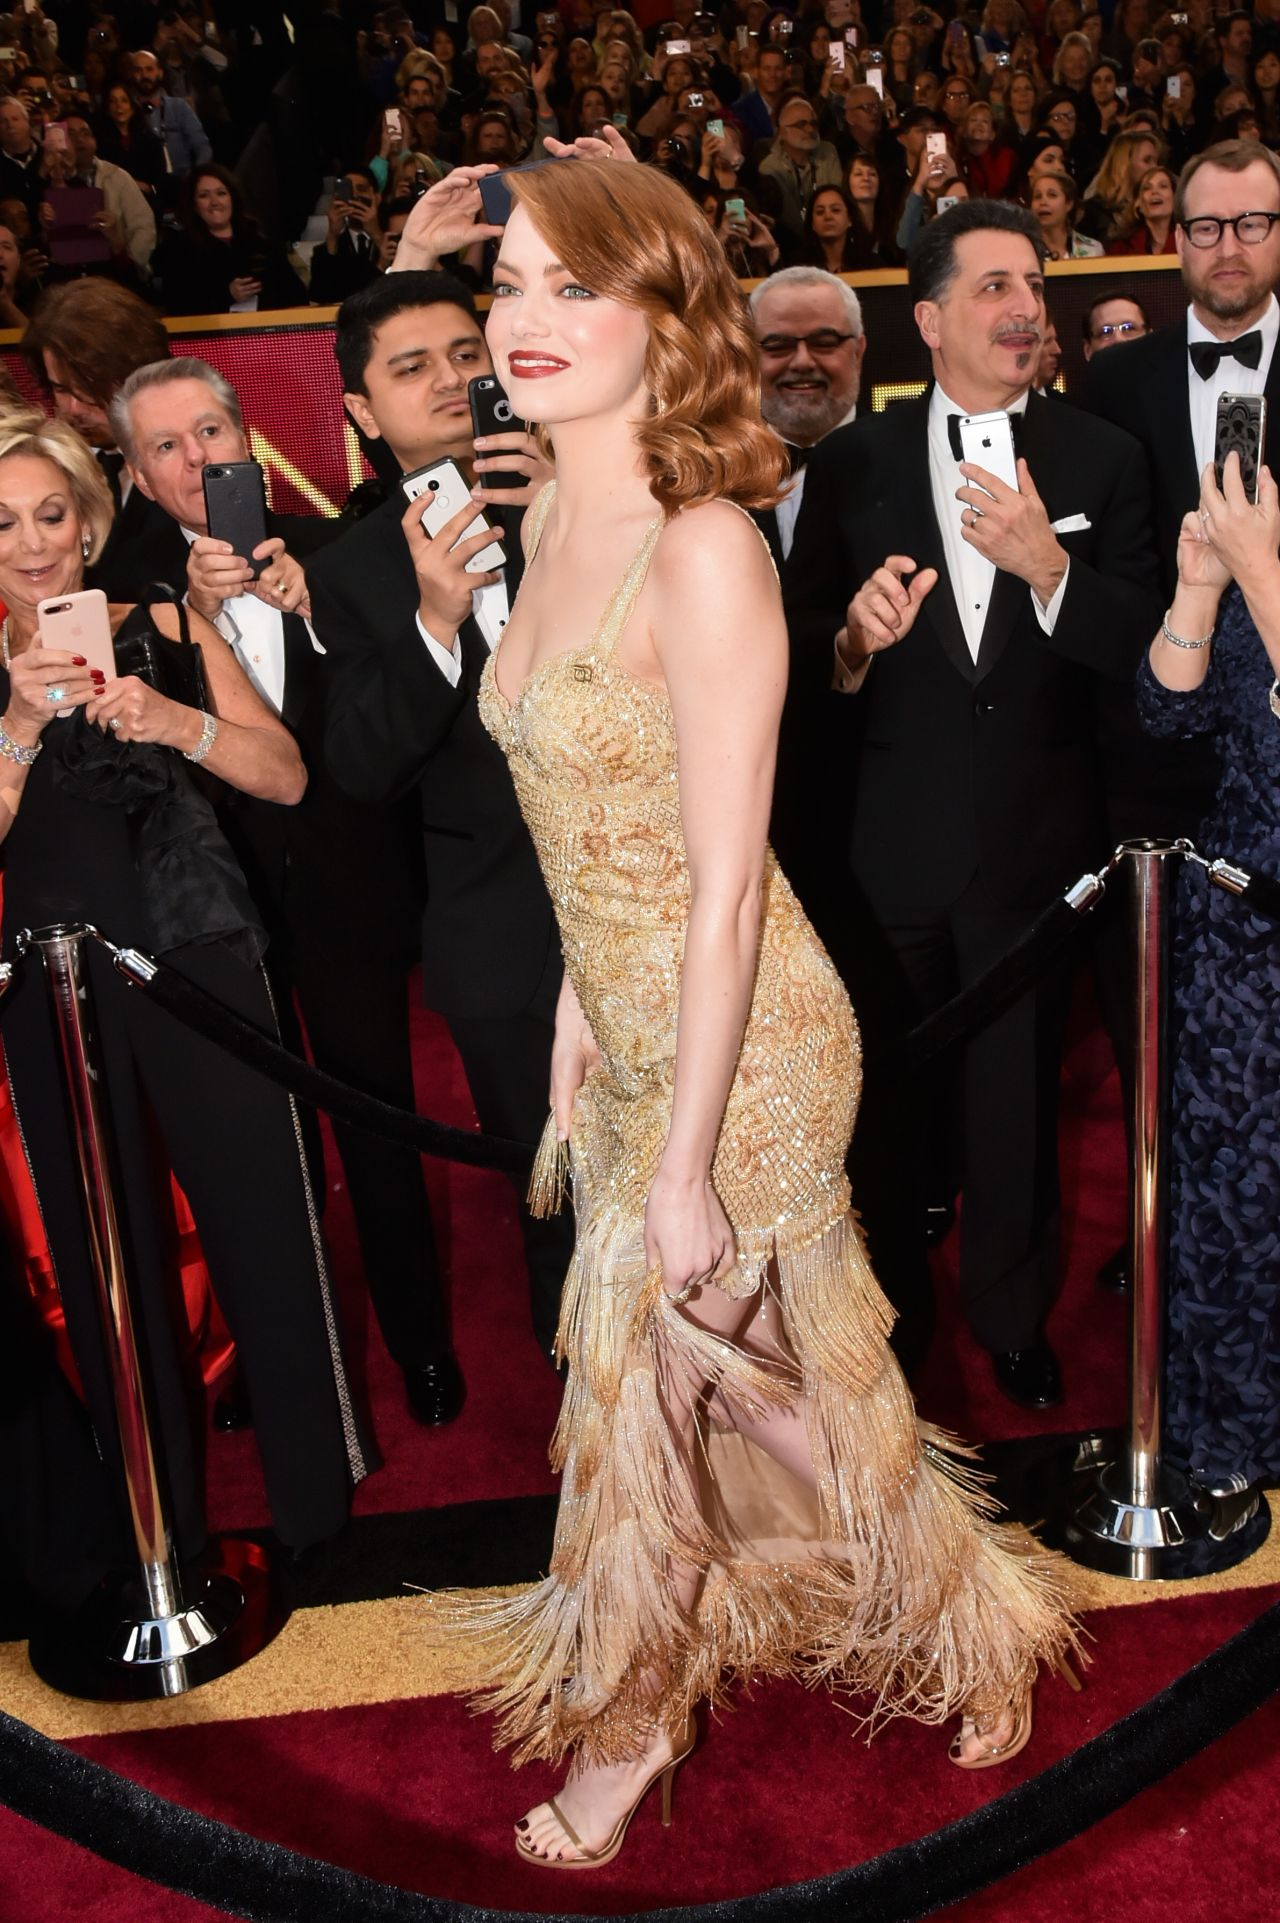 88thOscarlive together with Ariana Grandes First Fragrance Sexy Playful And Sweet Just Me in addition Oscars 2015 Nominees Announcement And Live Stream as well Emma Stone Oscars 2017 Red Carpet Hollywood 705039 also Uk Sky Chinema Live Oscar. on oscars red carpet live stream